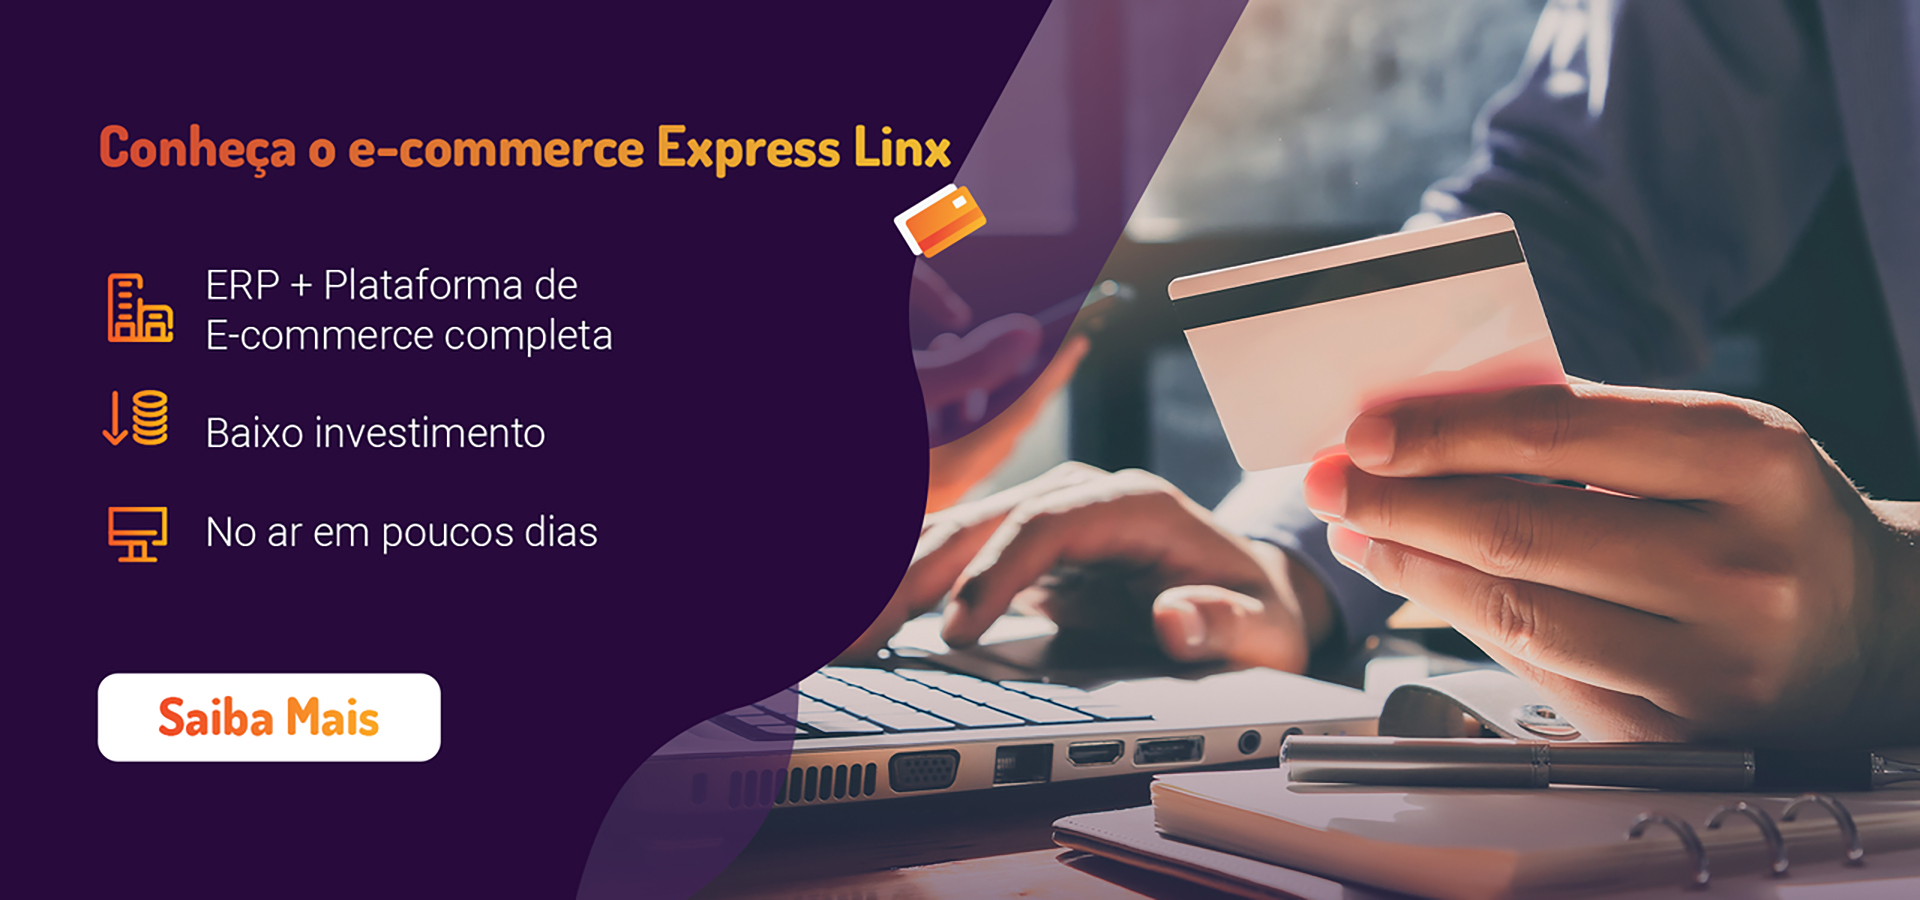 E-commerce Express